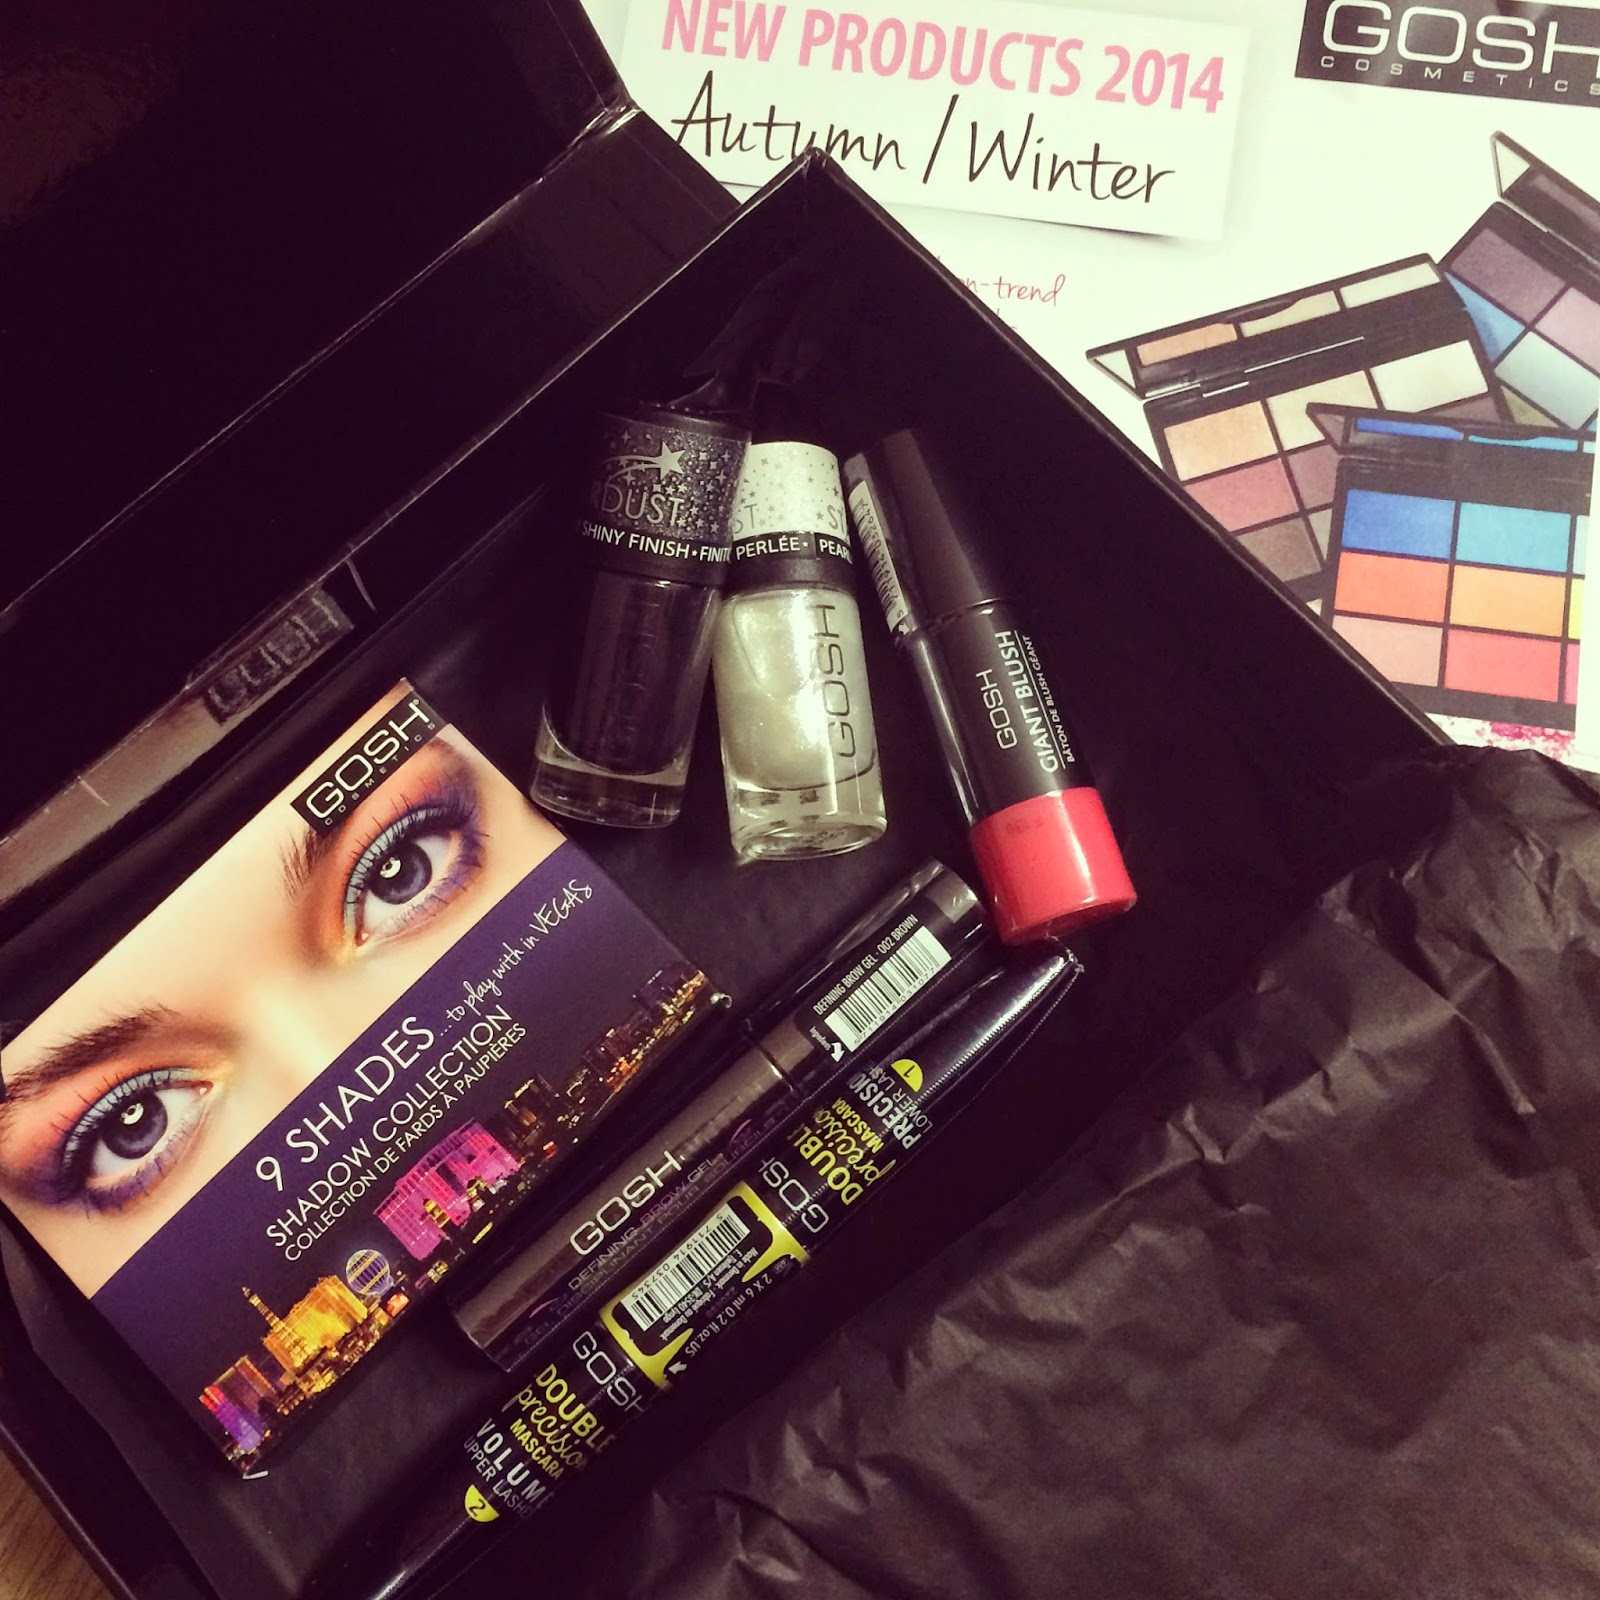 gosh-cosmetics-event-2014-autumn-winter-goodie-bag